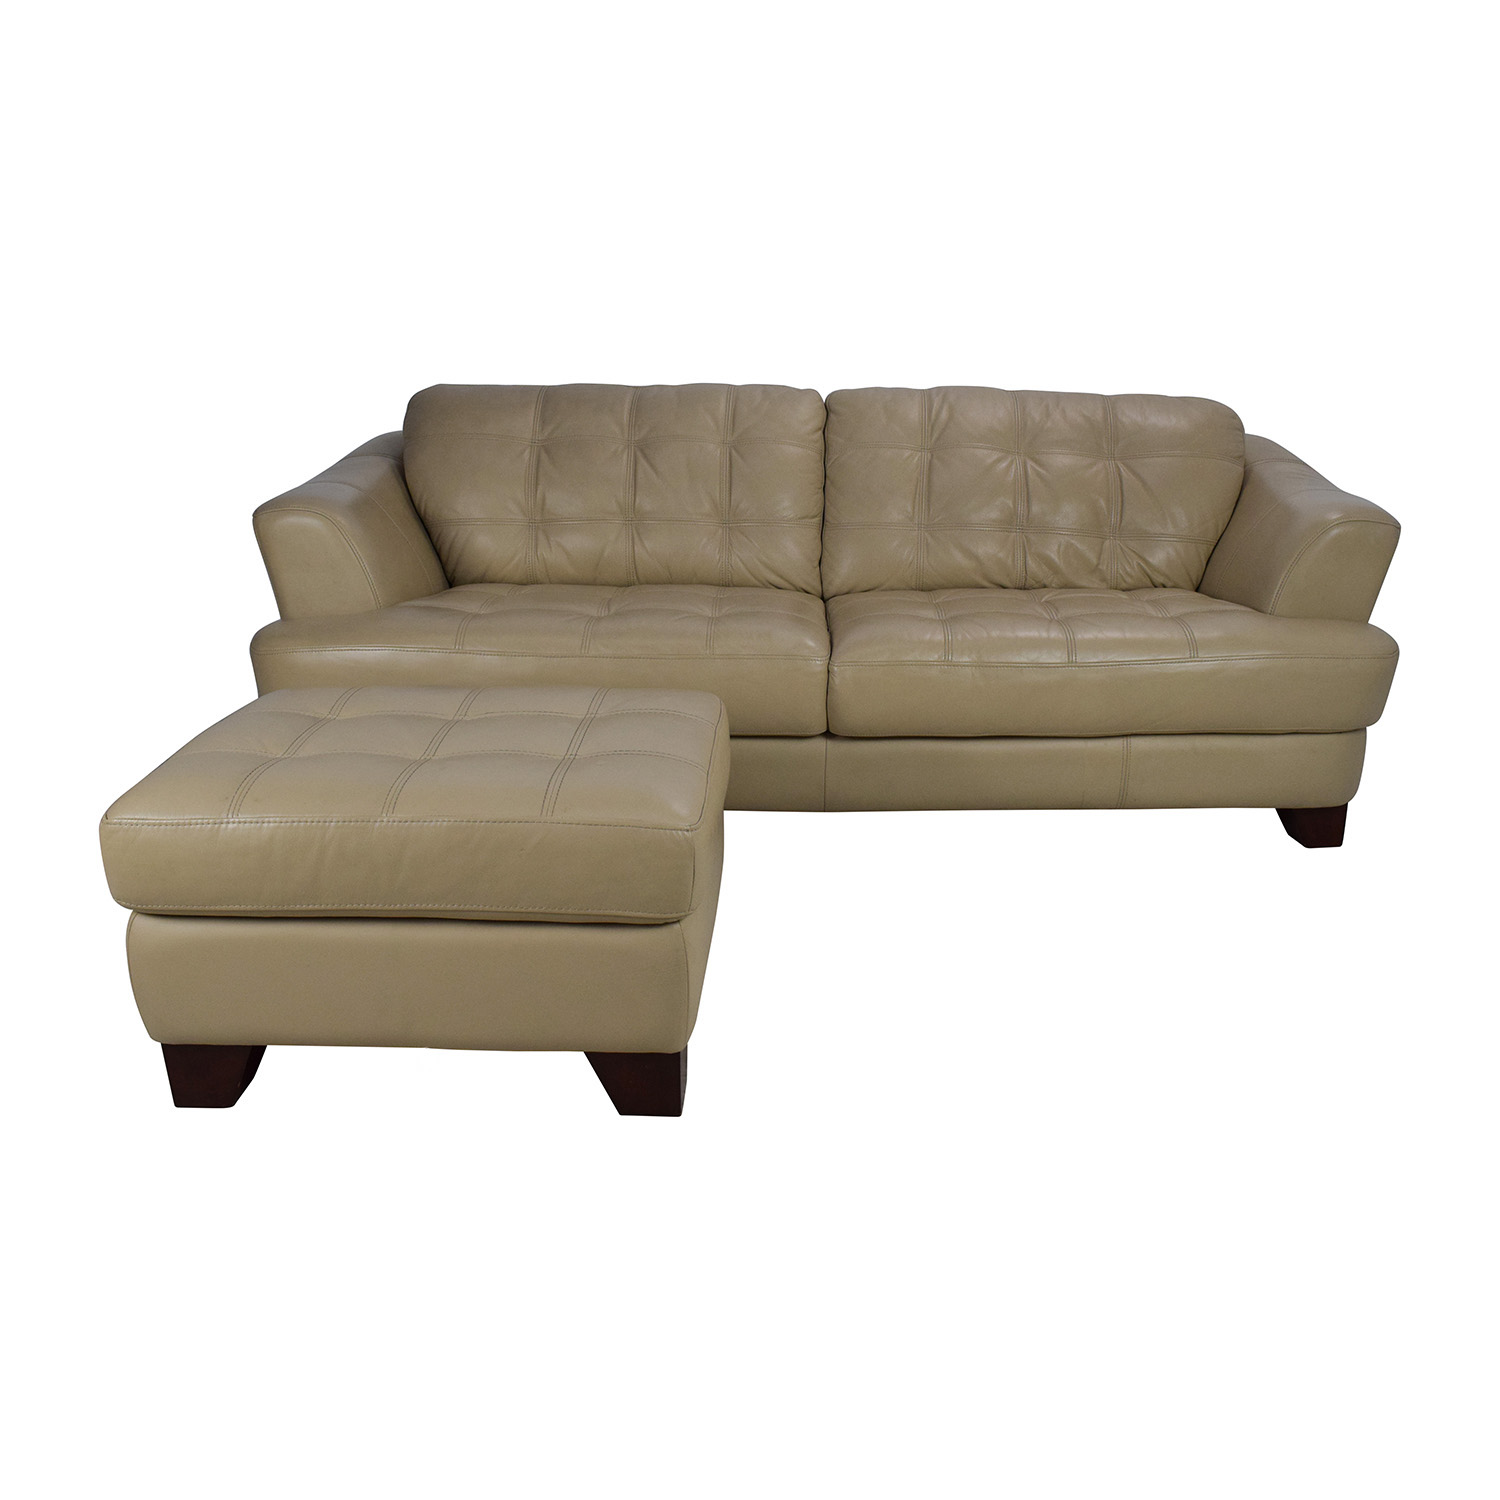 Bobs Furniture Leather Sofa No Phony Gimmicks Just Pure Value Bob S Furniture Thesofa